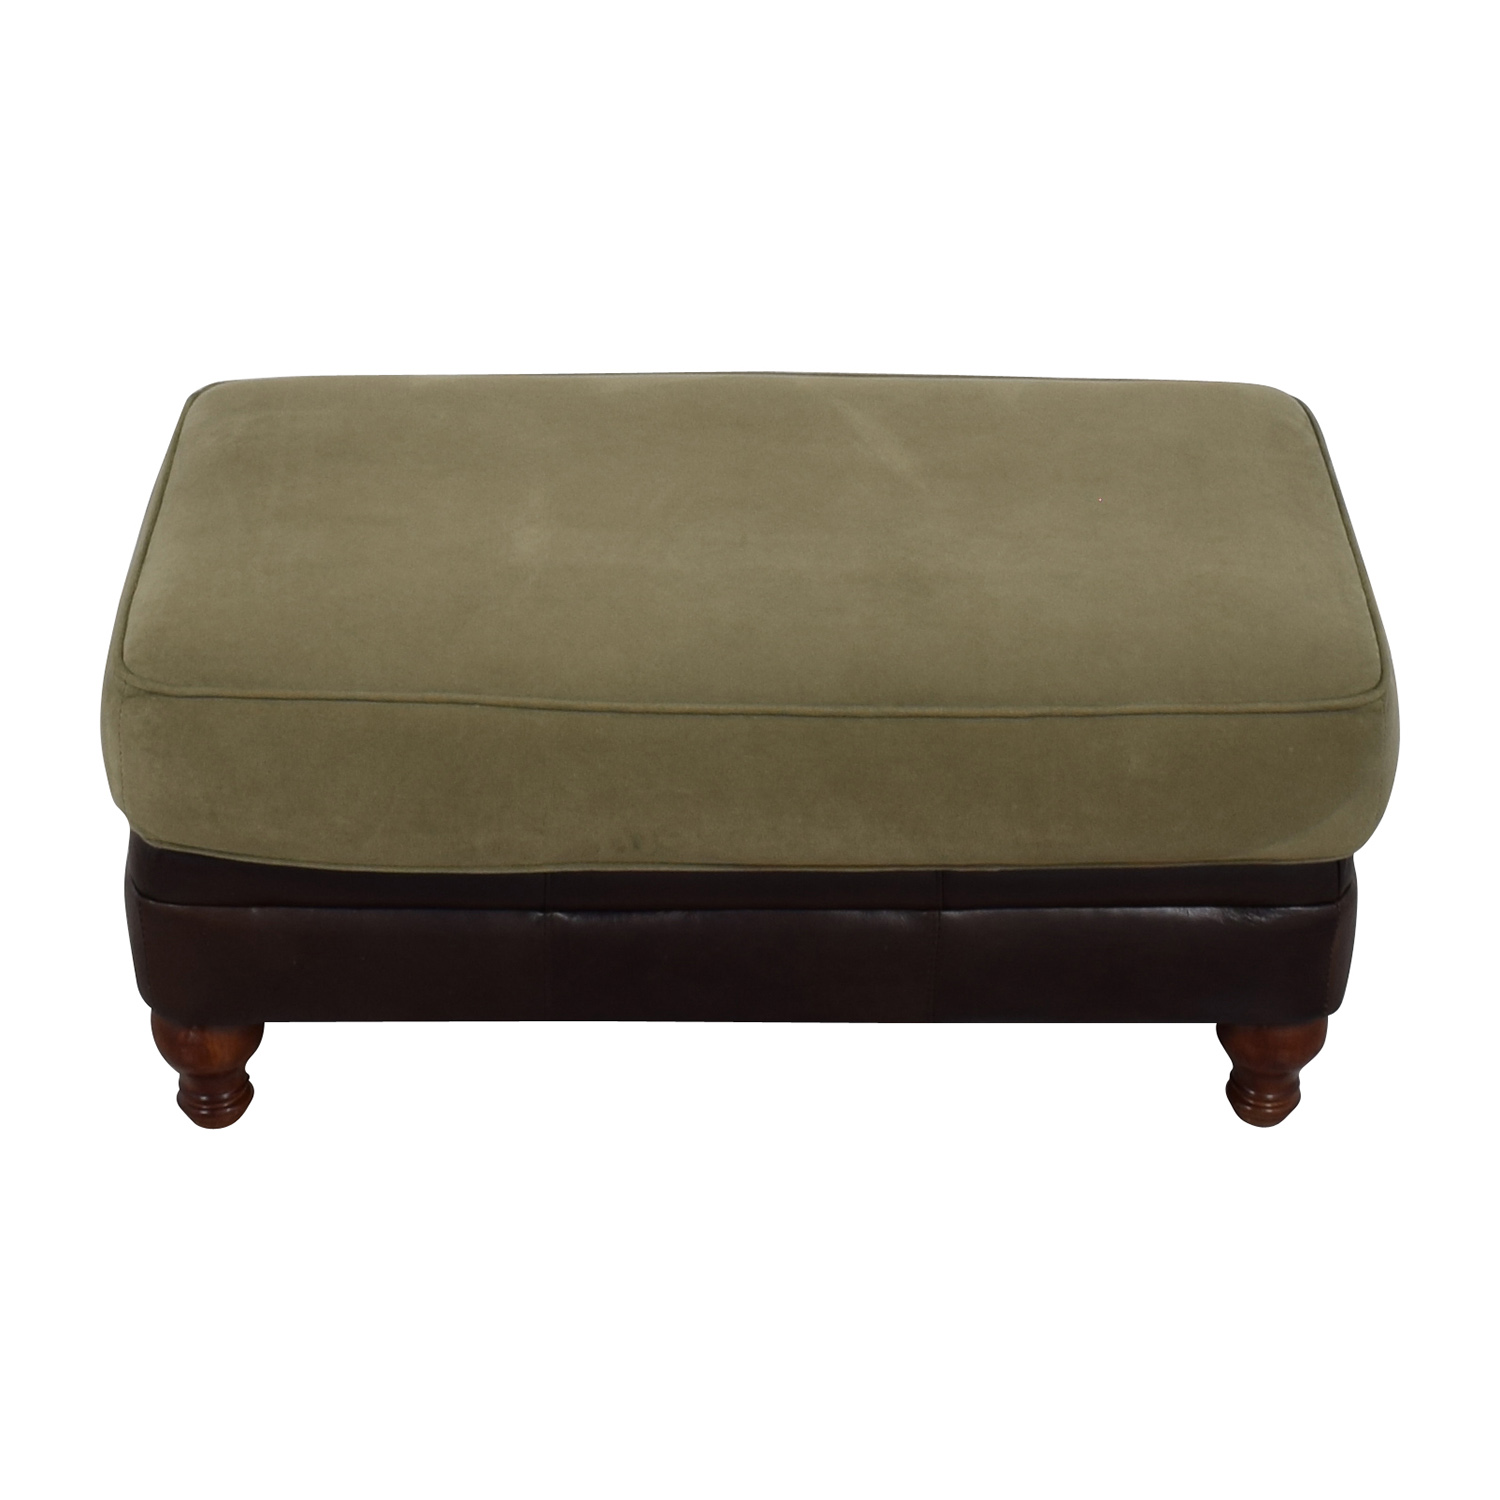 ... Dark Brown Leather and Sage Green Ottoman Brown/Beige ...